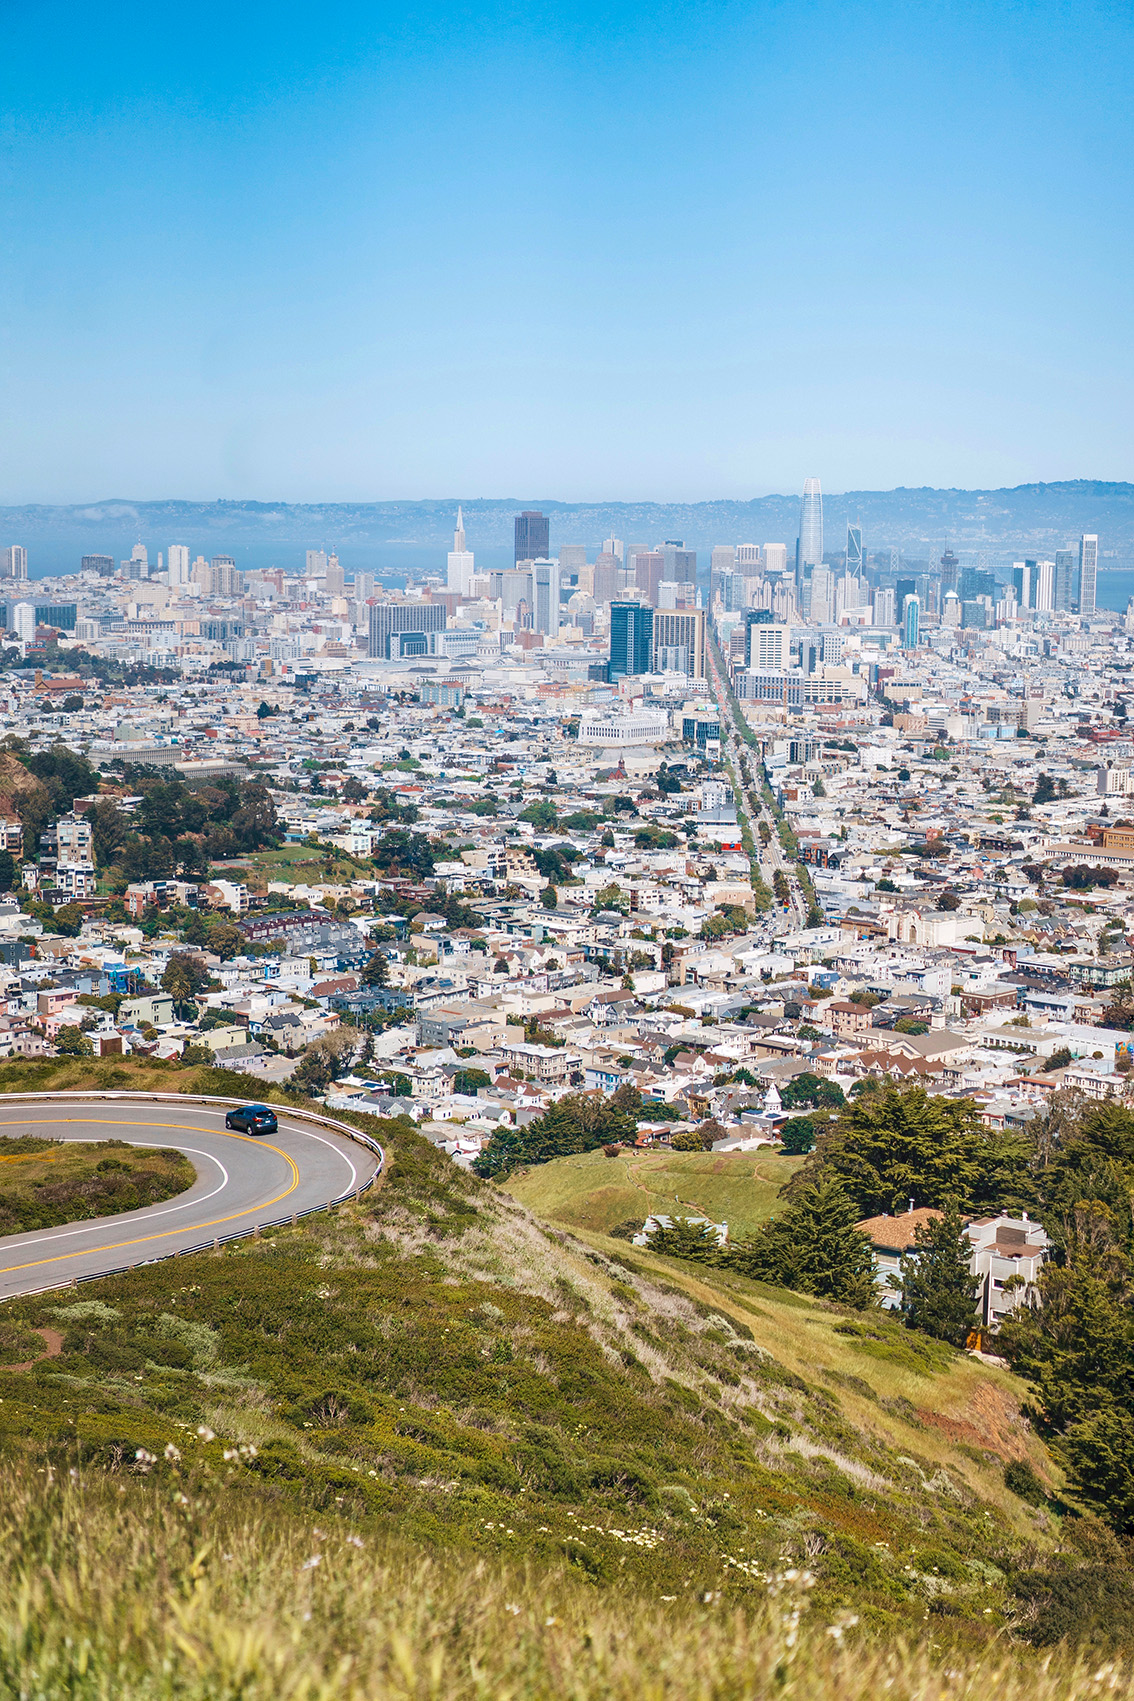 39 10 most instagrammable places in San Francisco you don't have to miss!